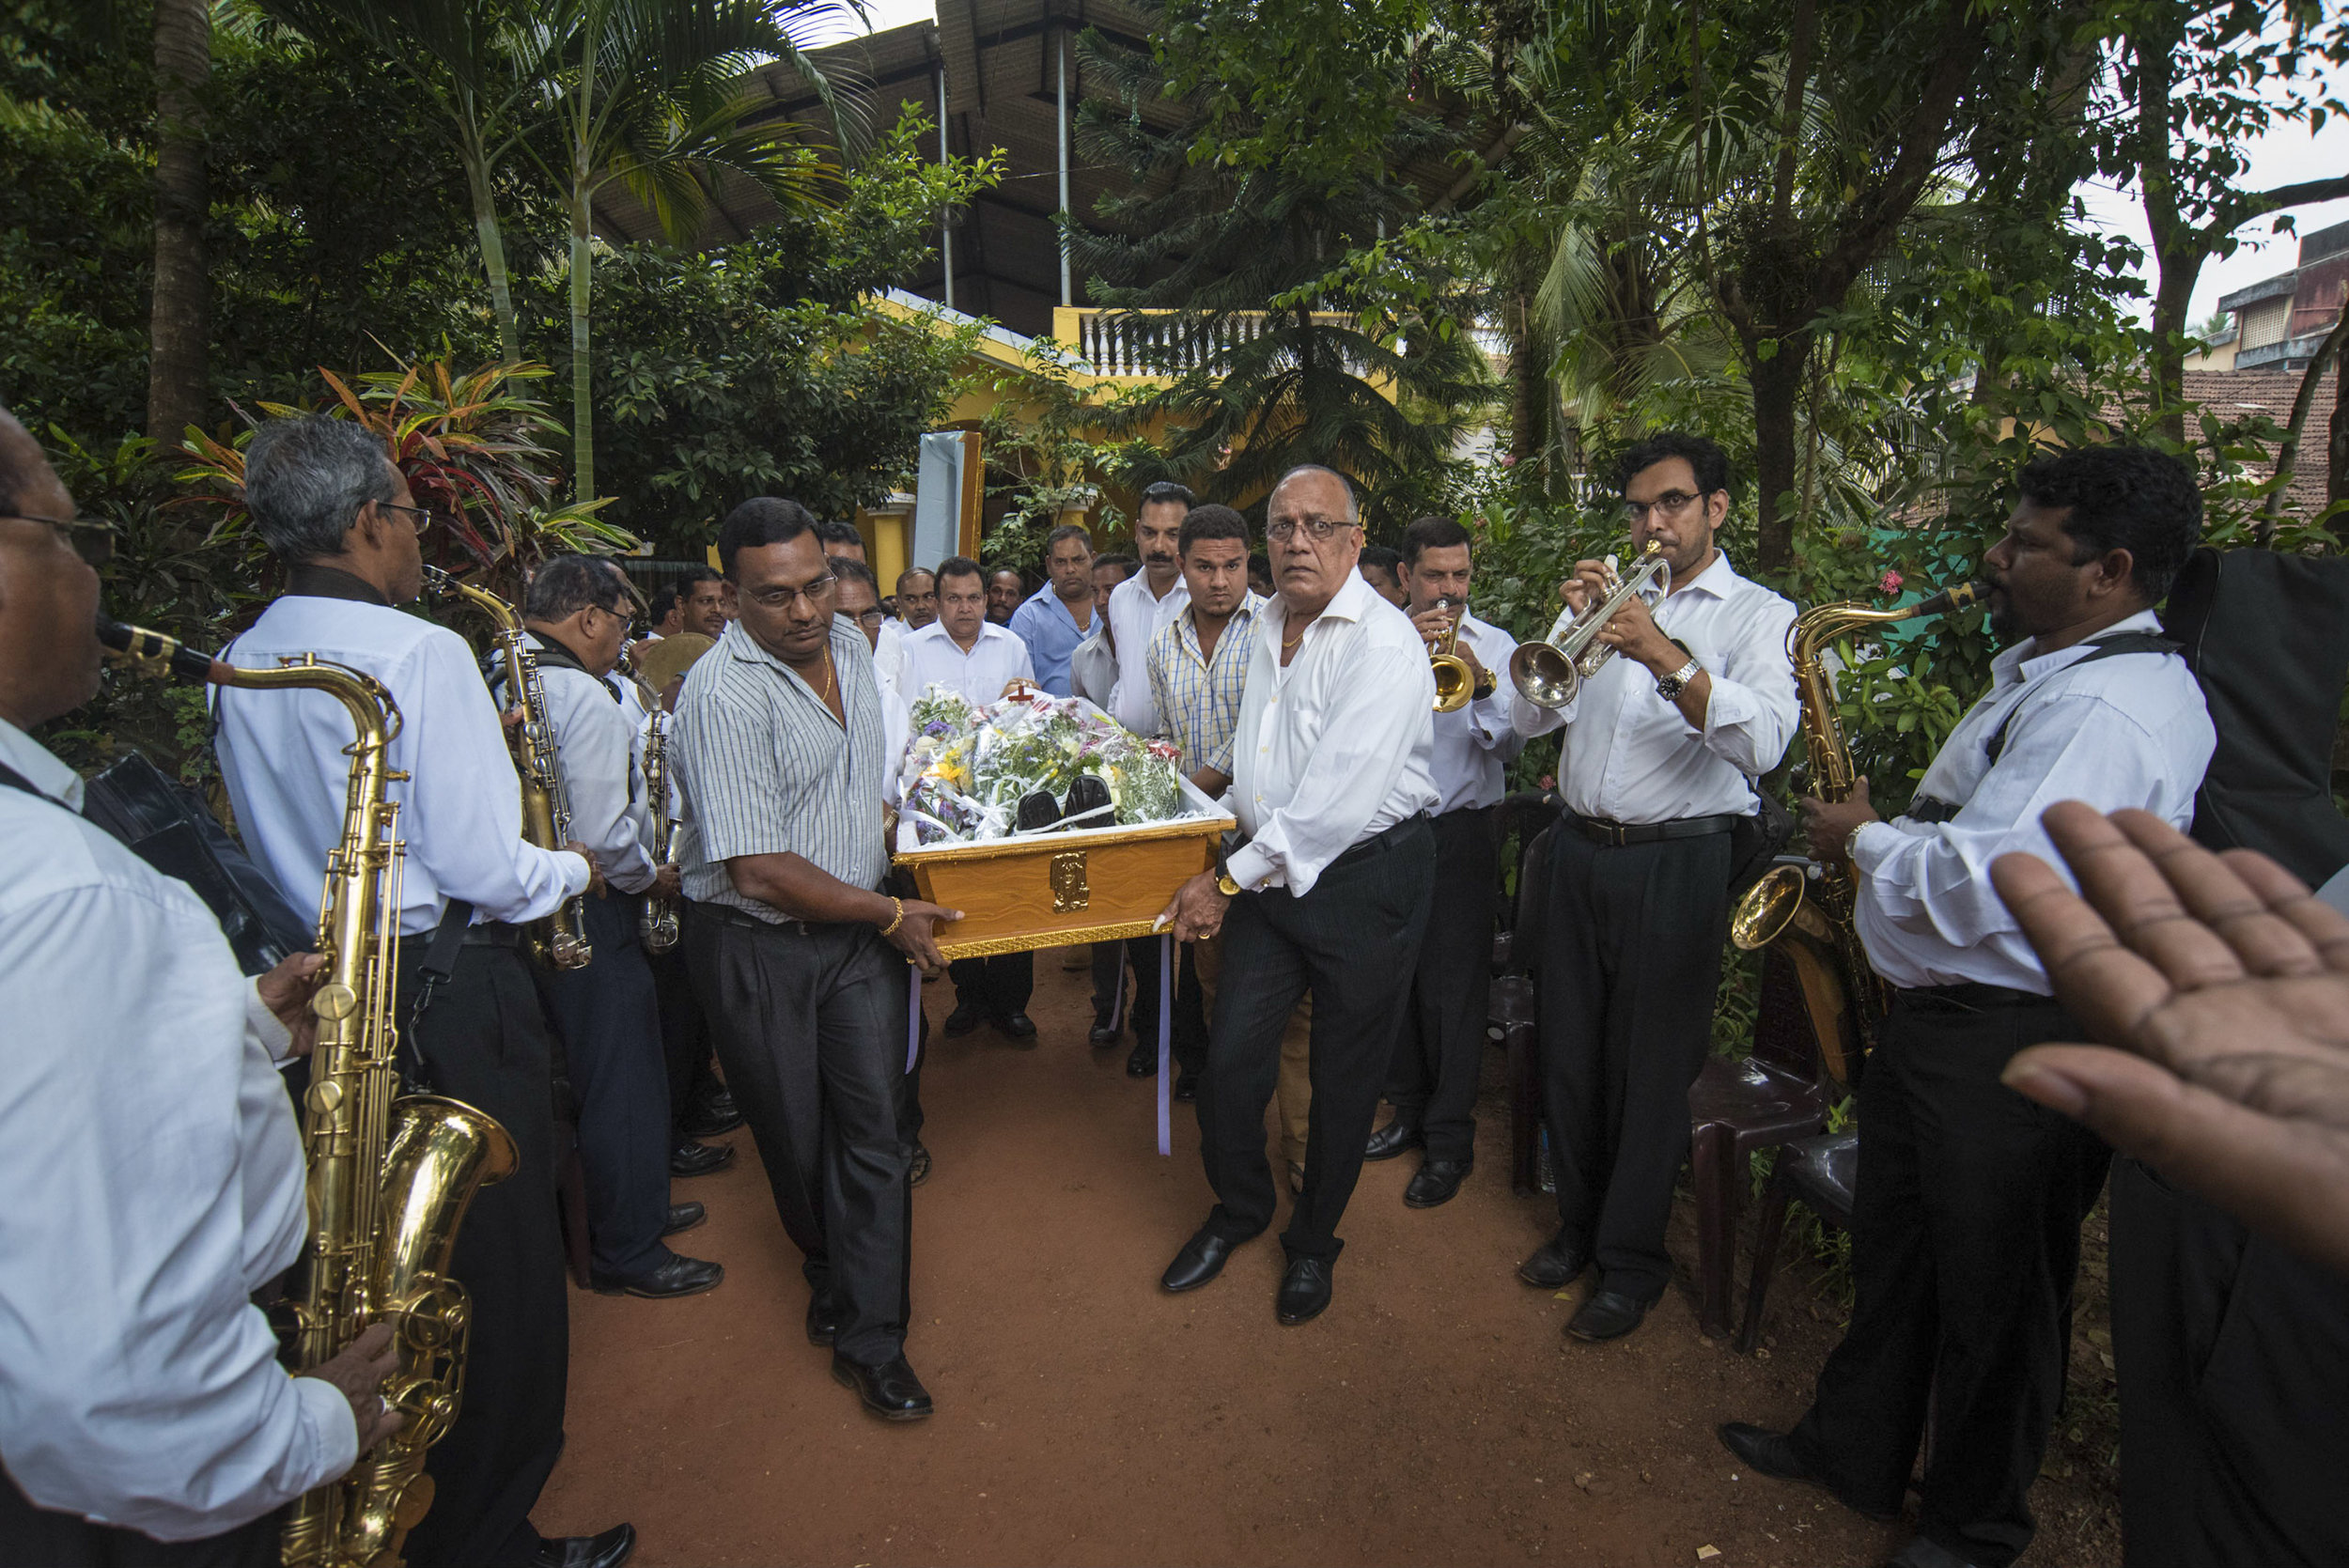 At the funeral of Caetano Braganza, Merces.